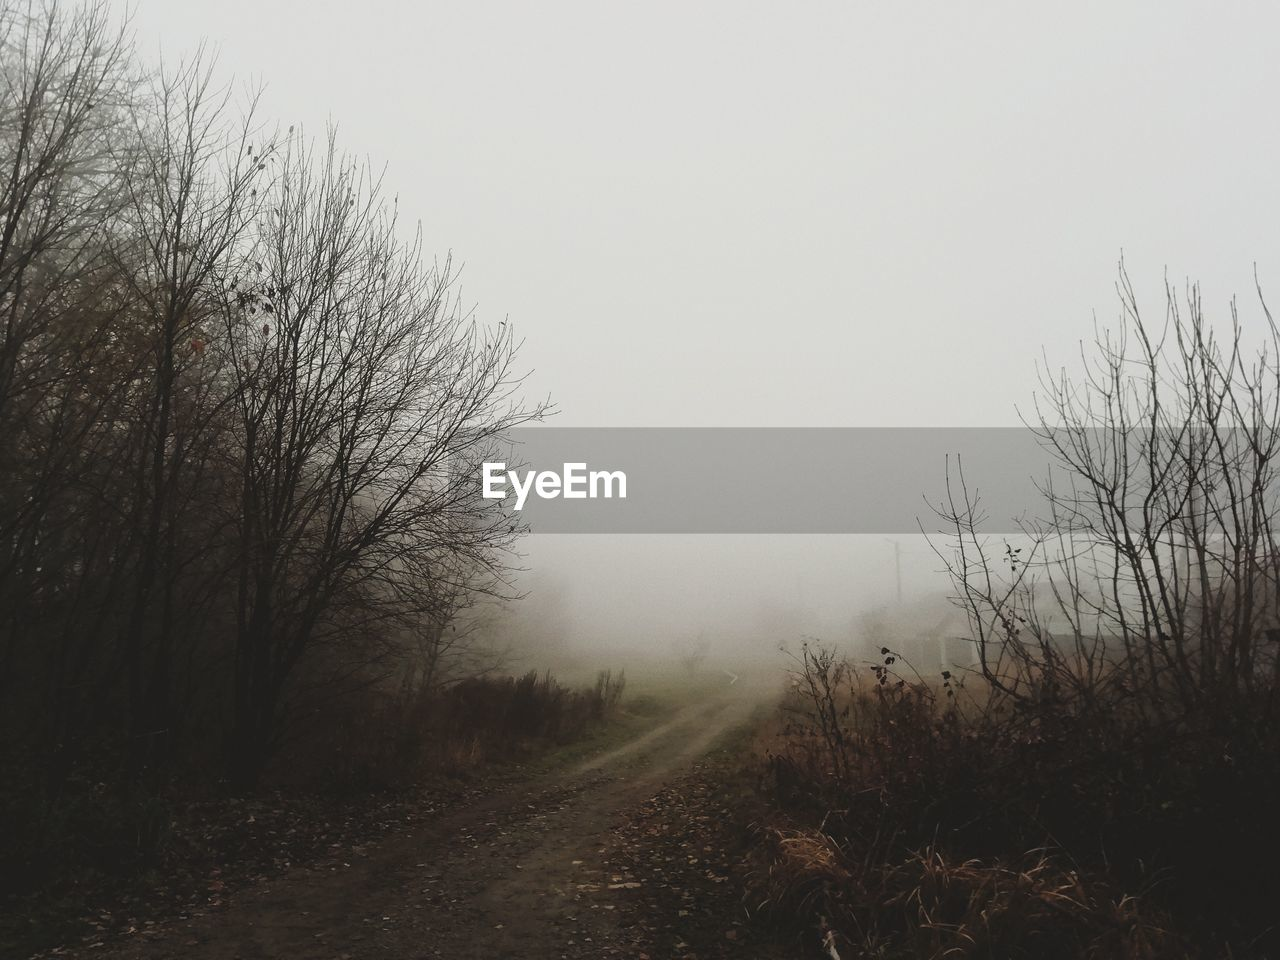 fog, sky, tree, plant, tranquility, nature, tranquil scene, beauty in nature, no people, landscape, bare tree, land, environment, scenics - nature, non-urban scene, the way forward, direction, field, outdoors, hazy